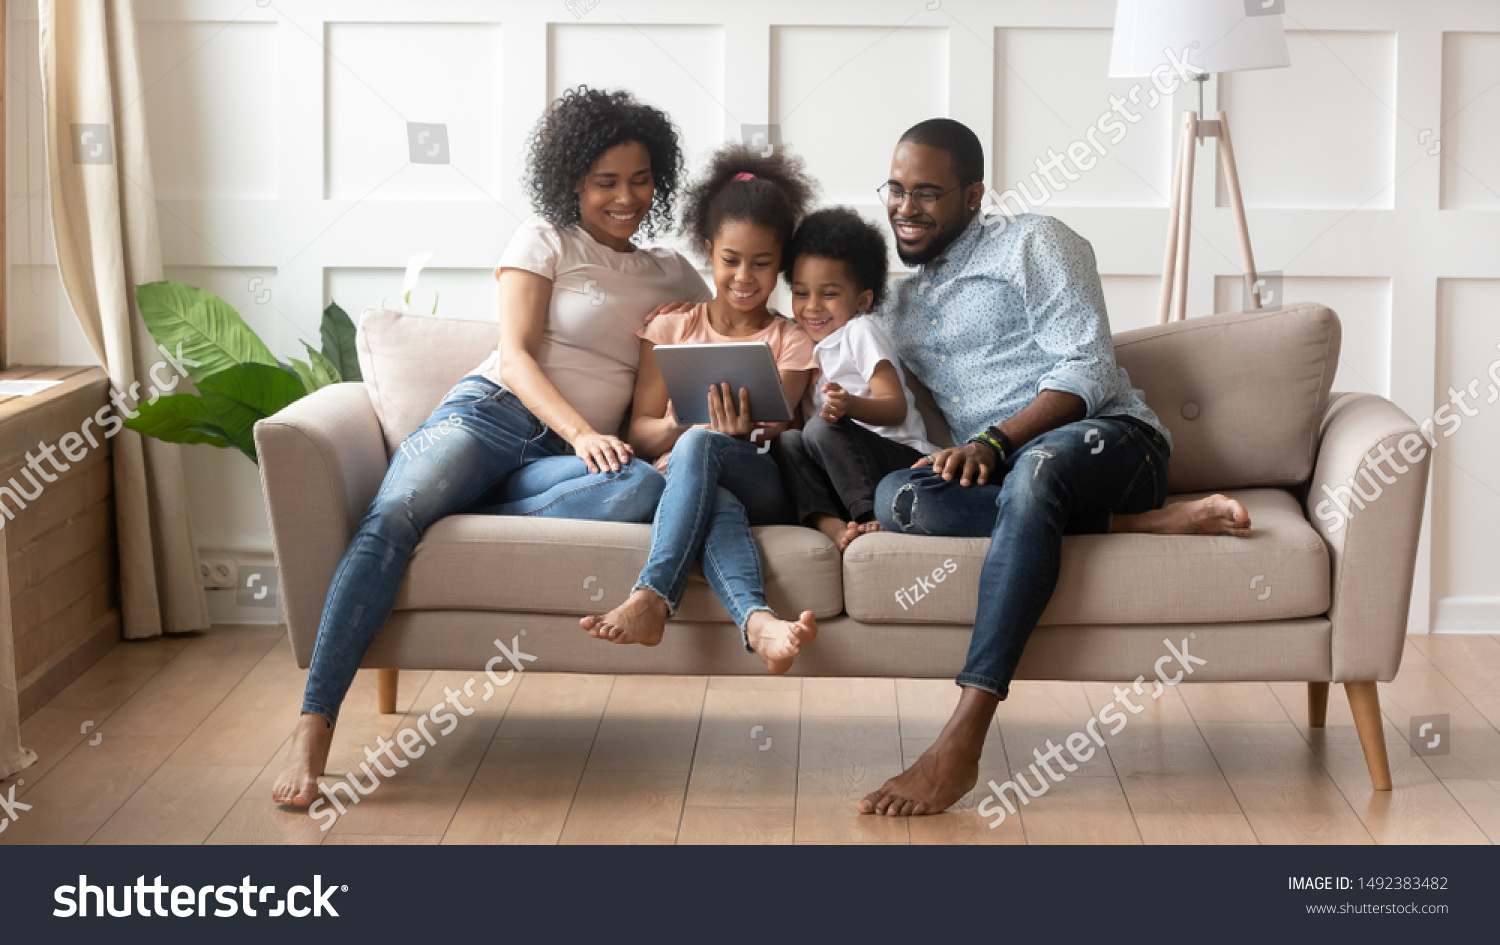 Concept of parental control, modern wireless technology usage, leisure activities at home with children, african full family with daughter and son resting on sofa use tablet computer having fun online